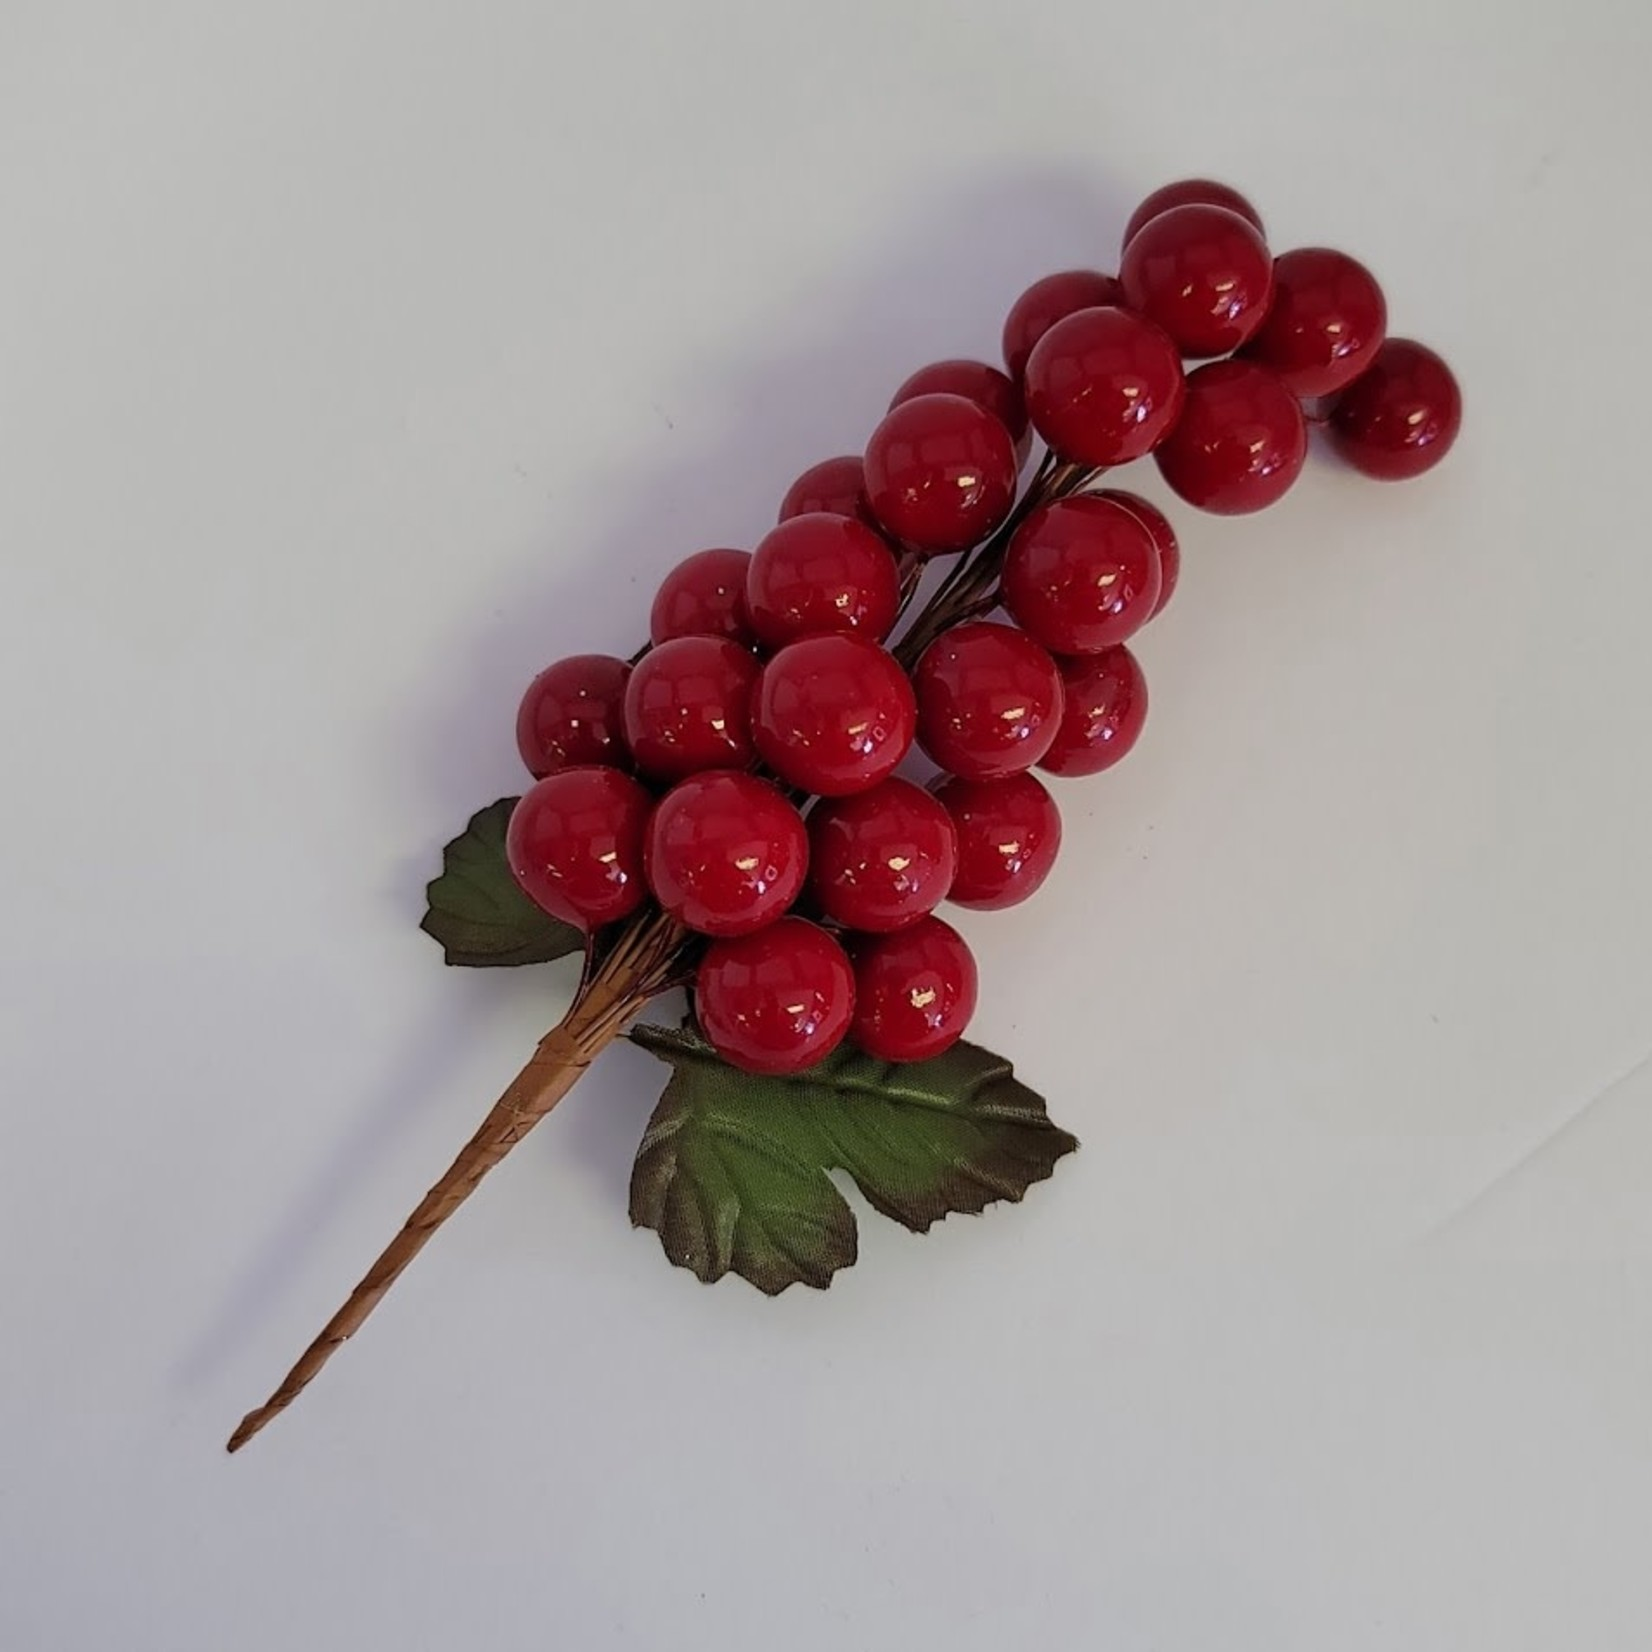 Berries on a pick